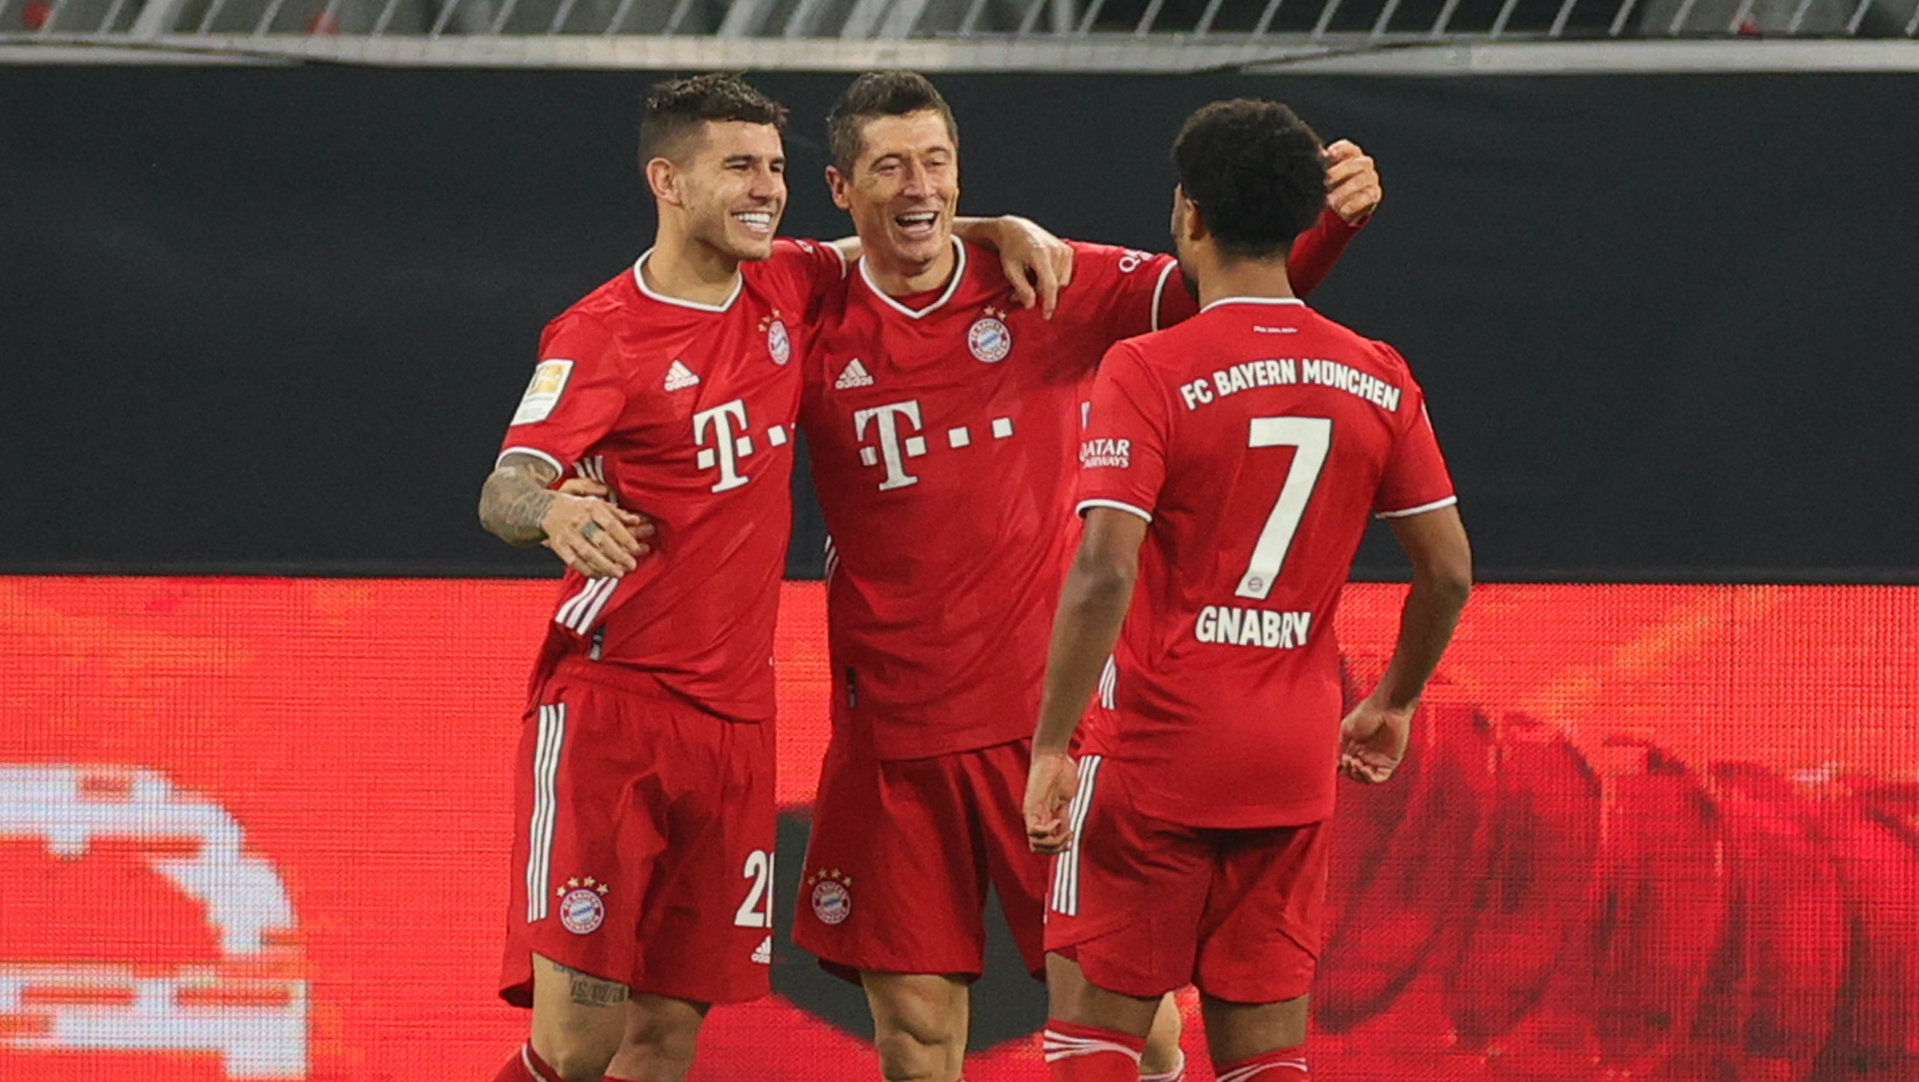 'I have the contract until 2023 and I never think what's happening after' - Lewandowski unsure on Bayern future